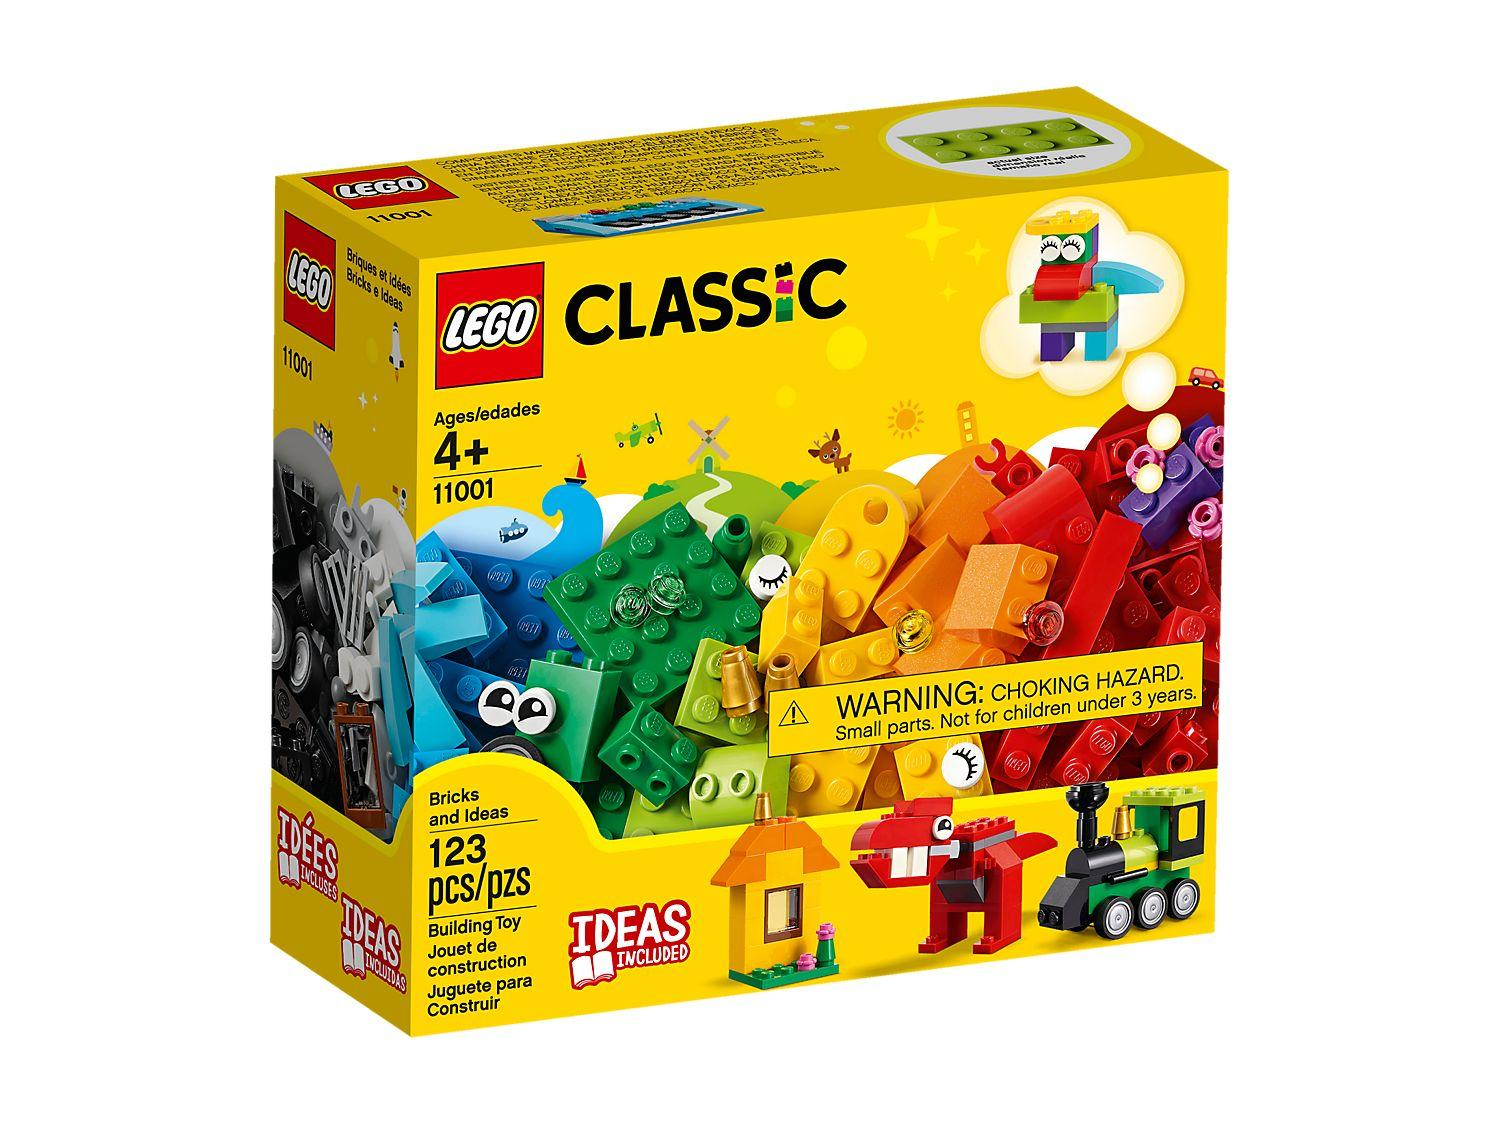 Lego Classic Bricks and Ideas (11001)